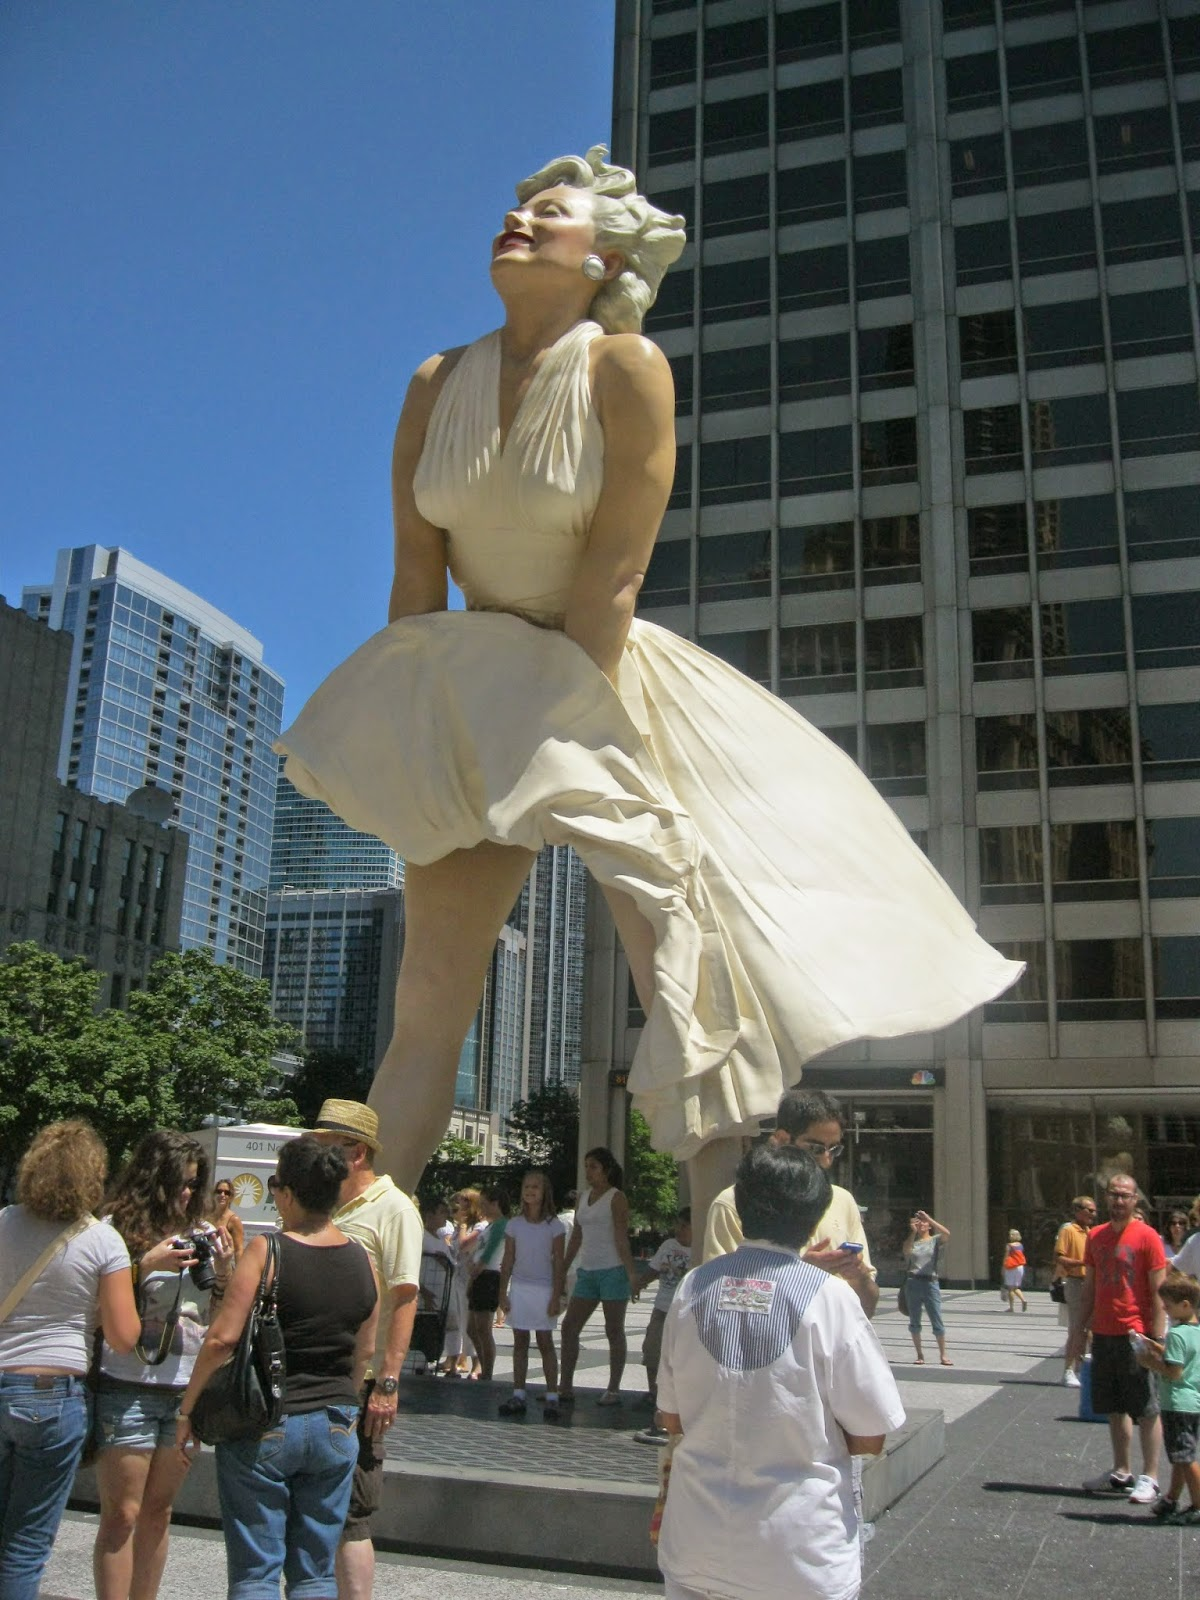 How Much Is A Mile >> Forever Marilyn Sculpture Marilyn Monroe Chicago